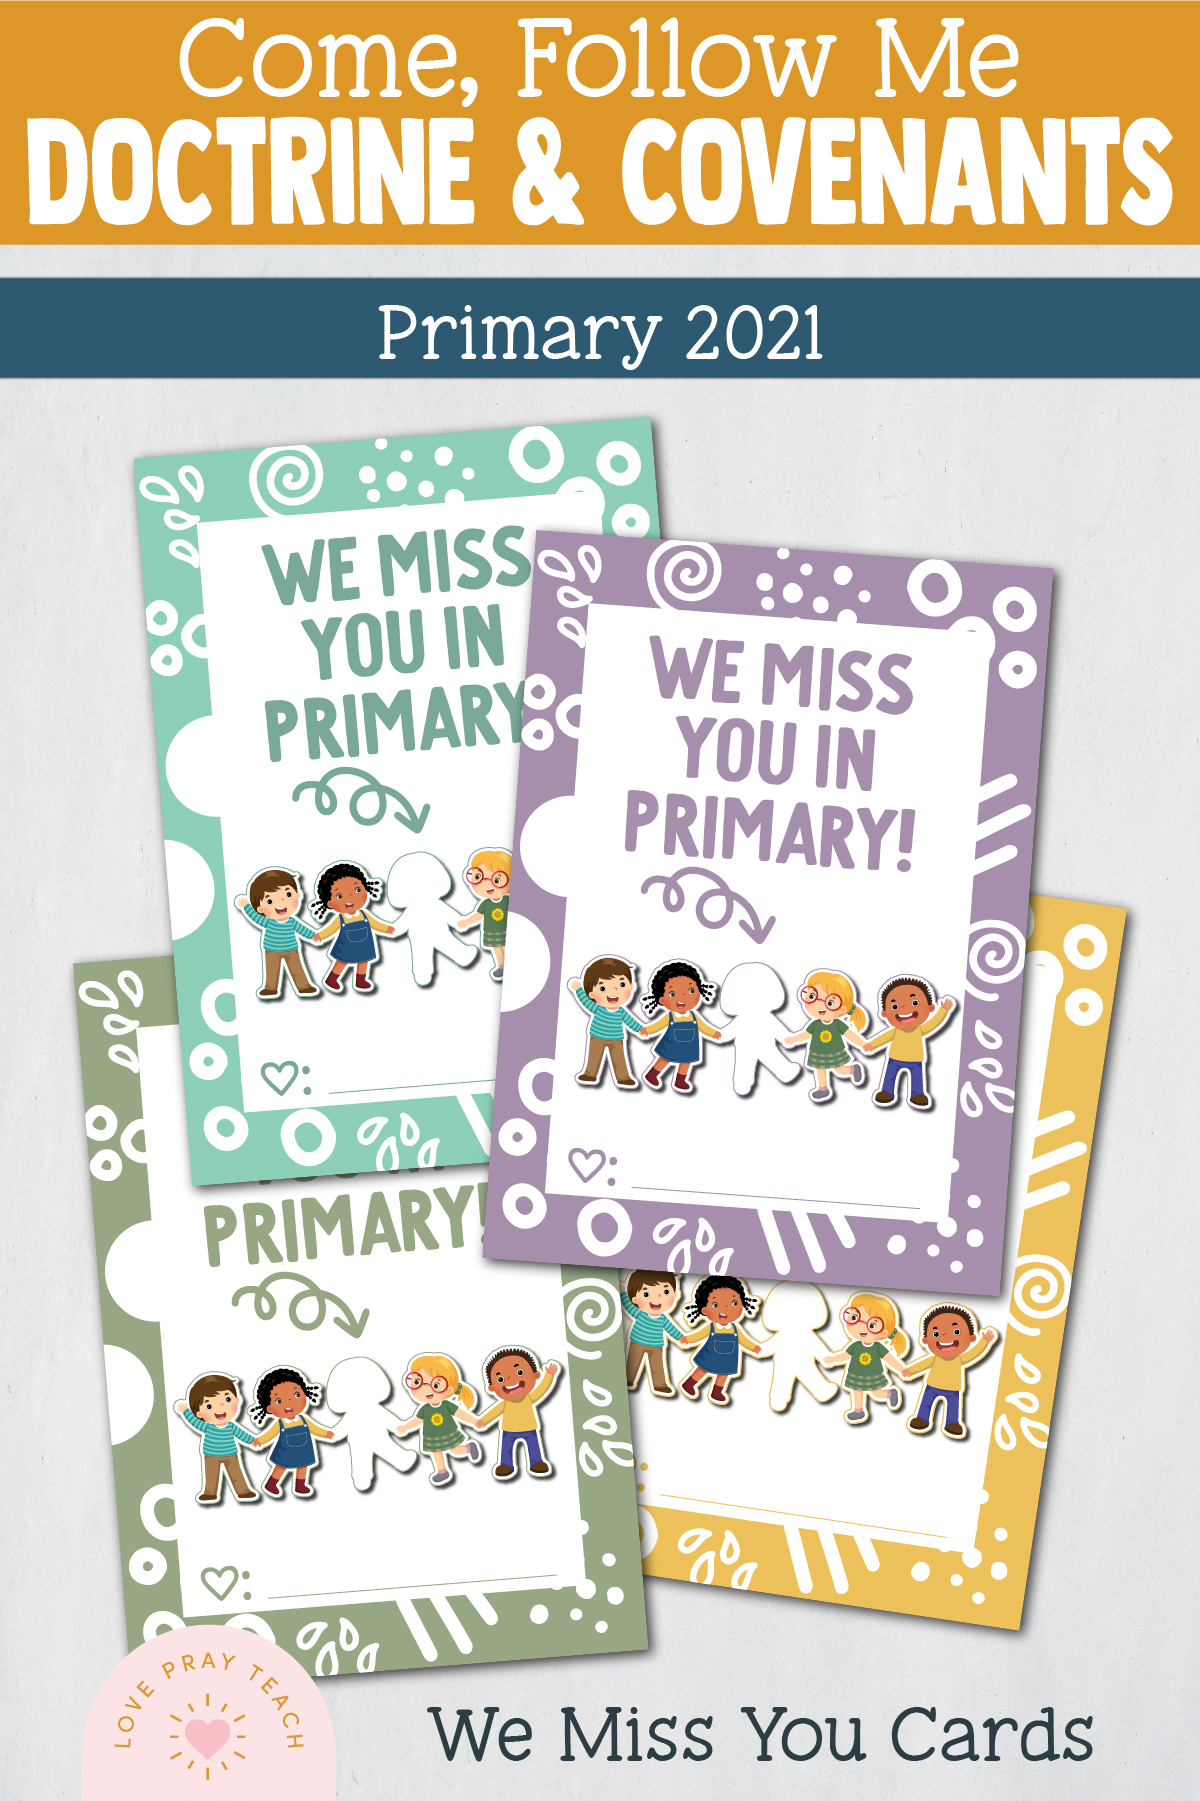 Primary 2021 Doctrine & Covenants Birthday, Teacher's gifts, All About Me Spotlight, tags and cards www.LovePrayTeach.com